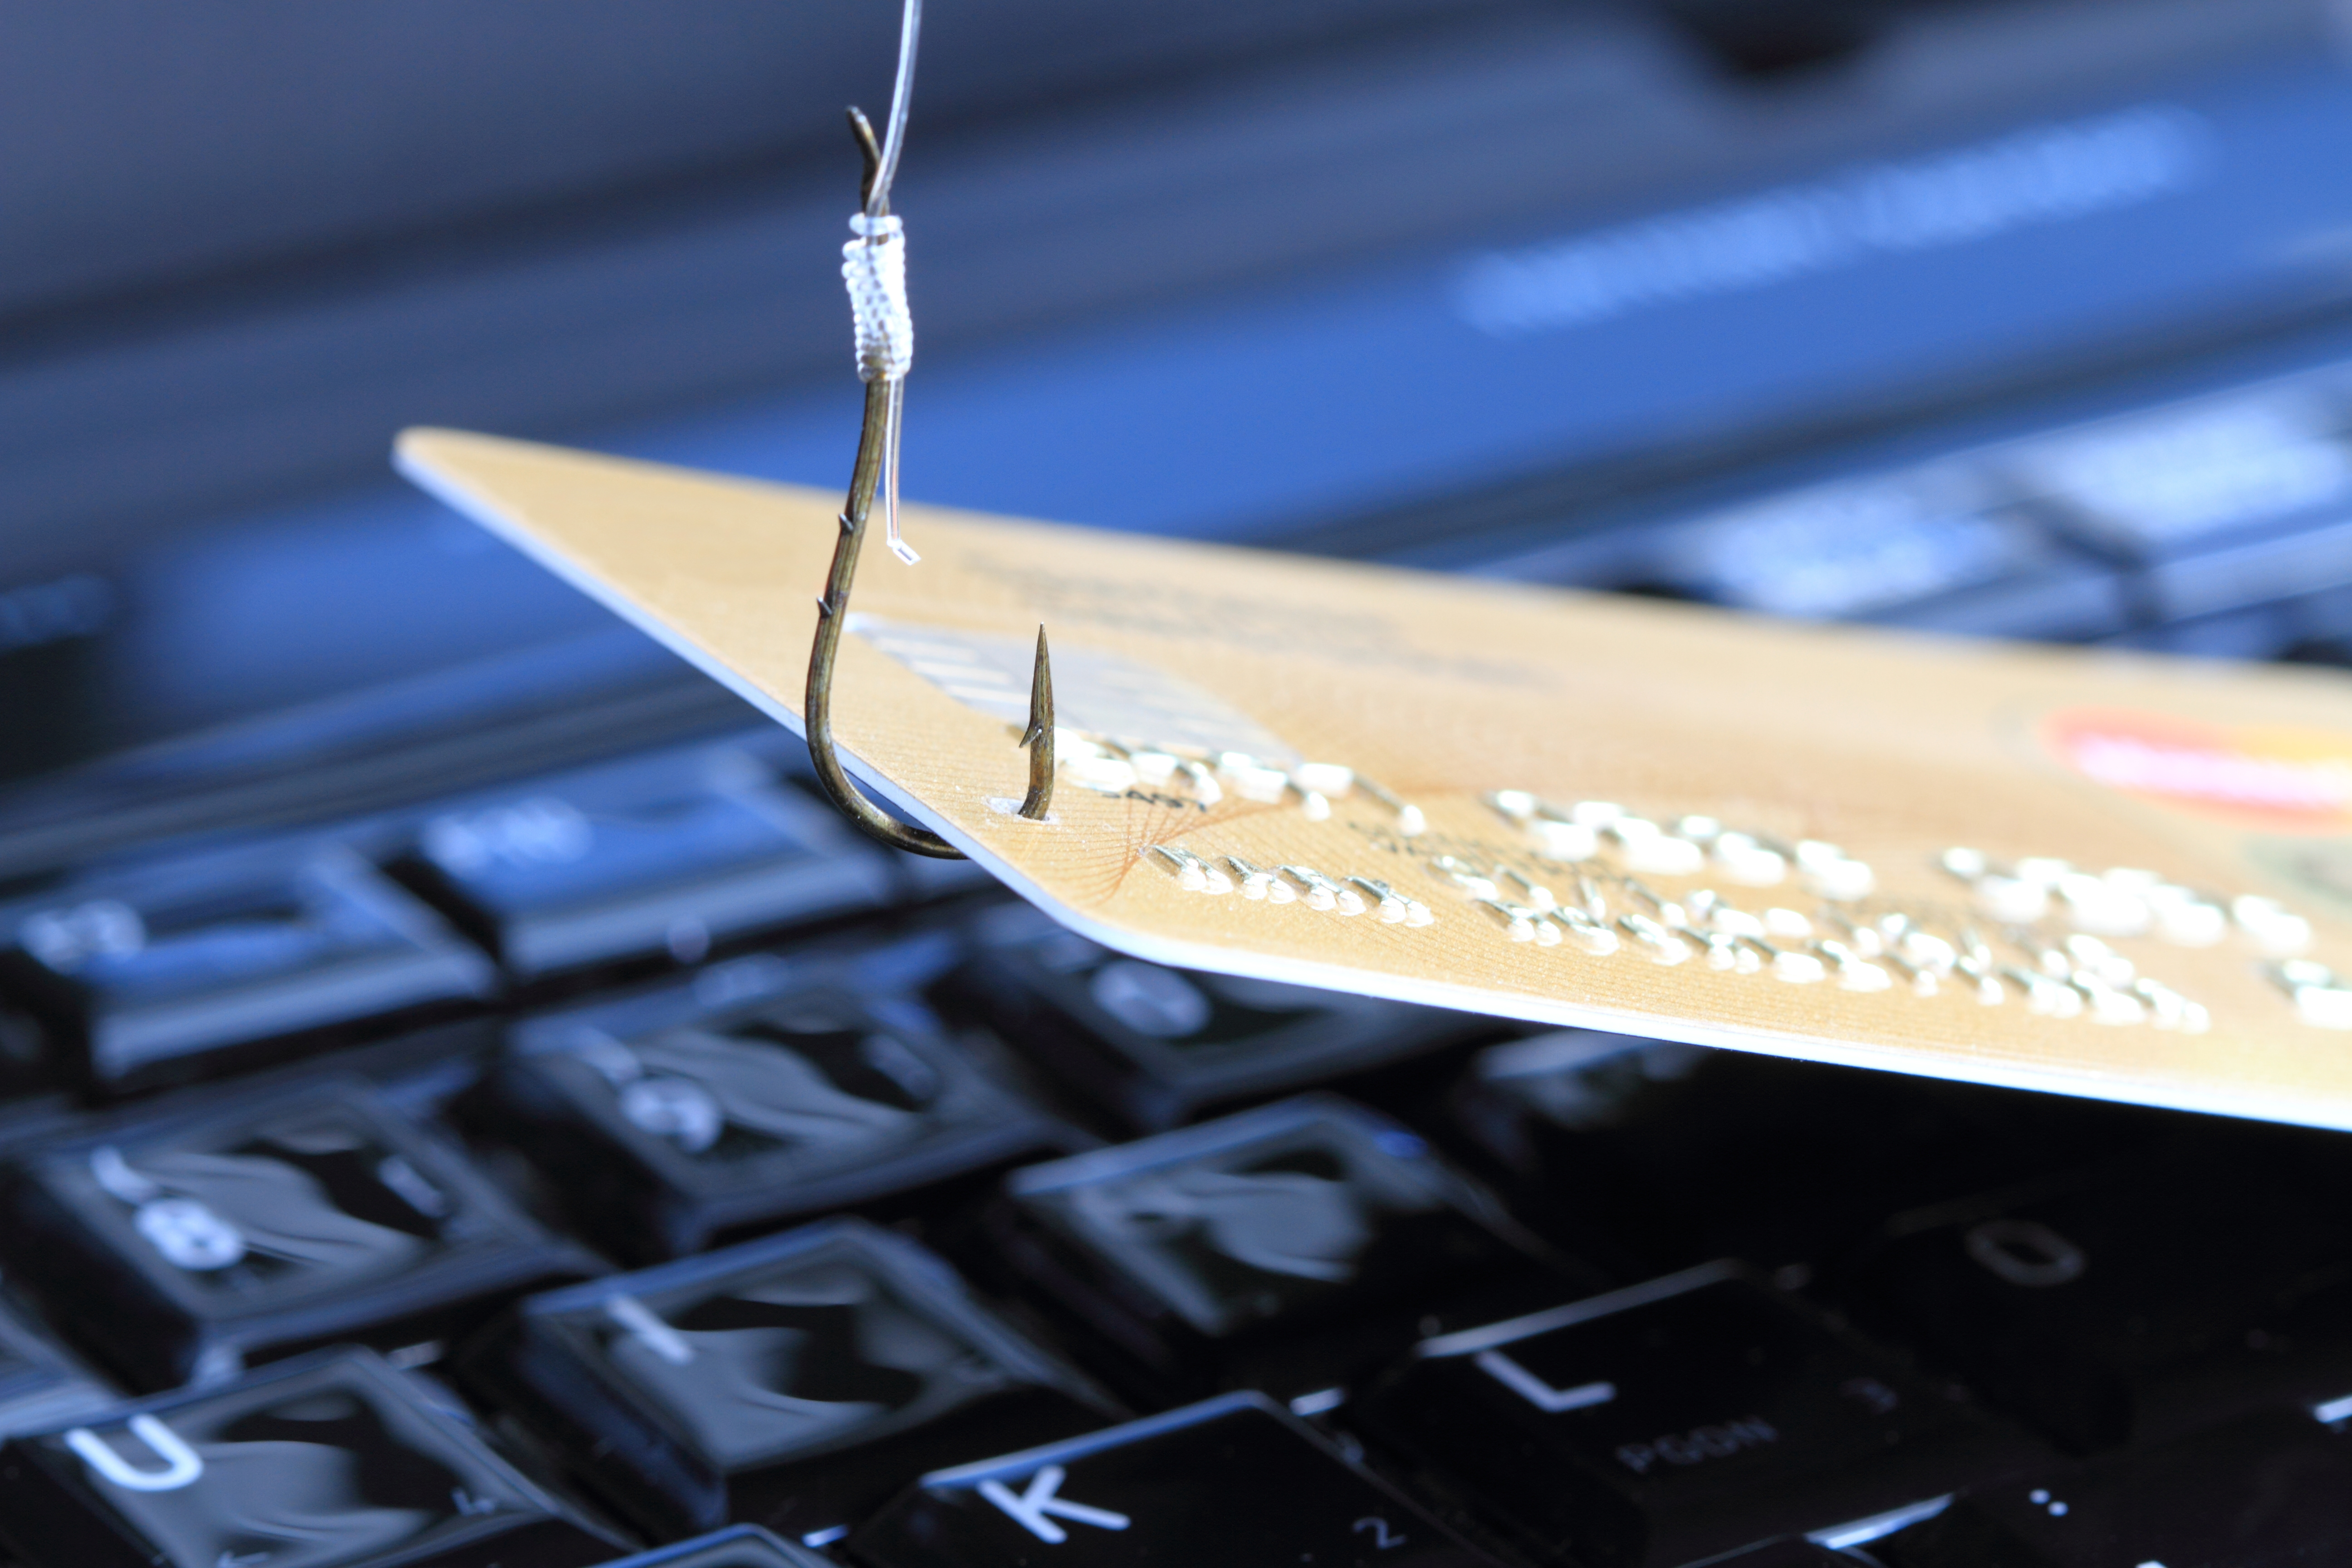 The top 10 most-clicked phishing subject lines